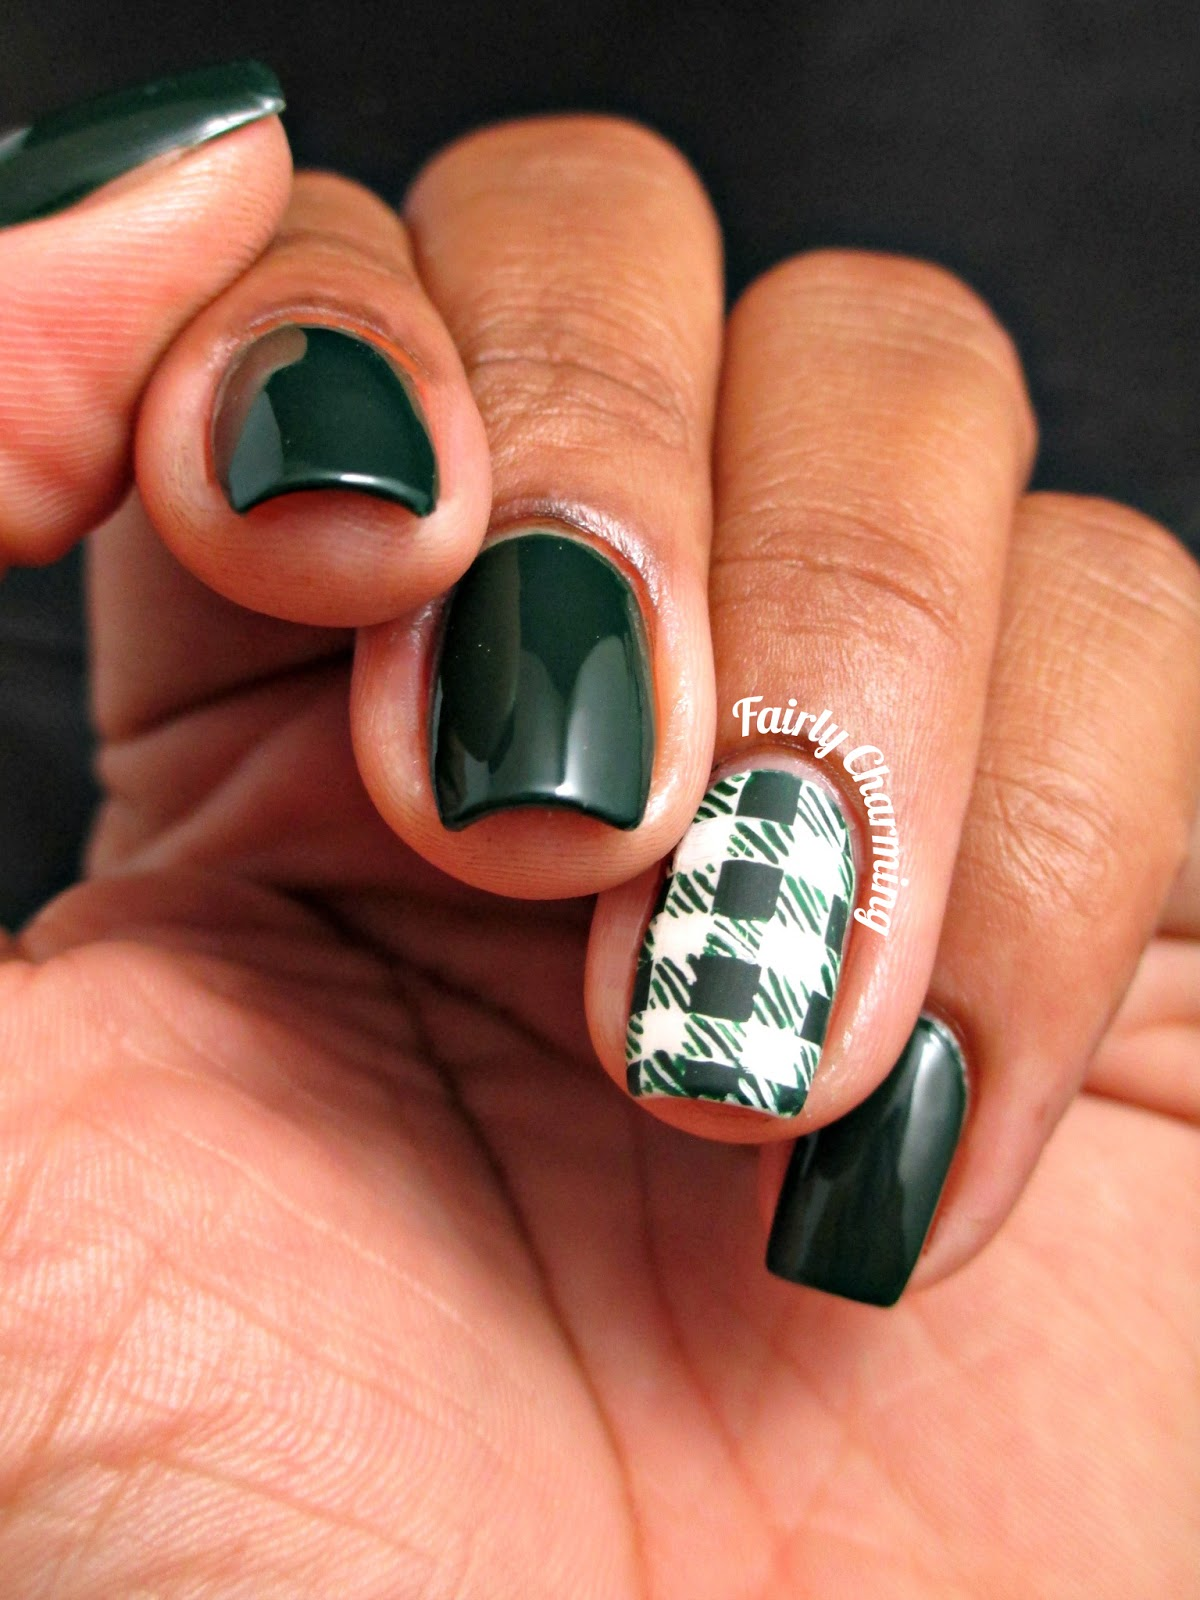 OPI, Christmas Gone Plaid, Flannel, Plaid, Nails, Nail Art, Nail Design, Mani